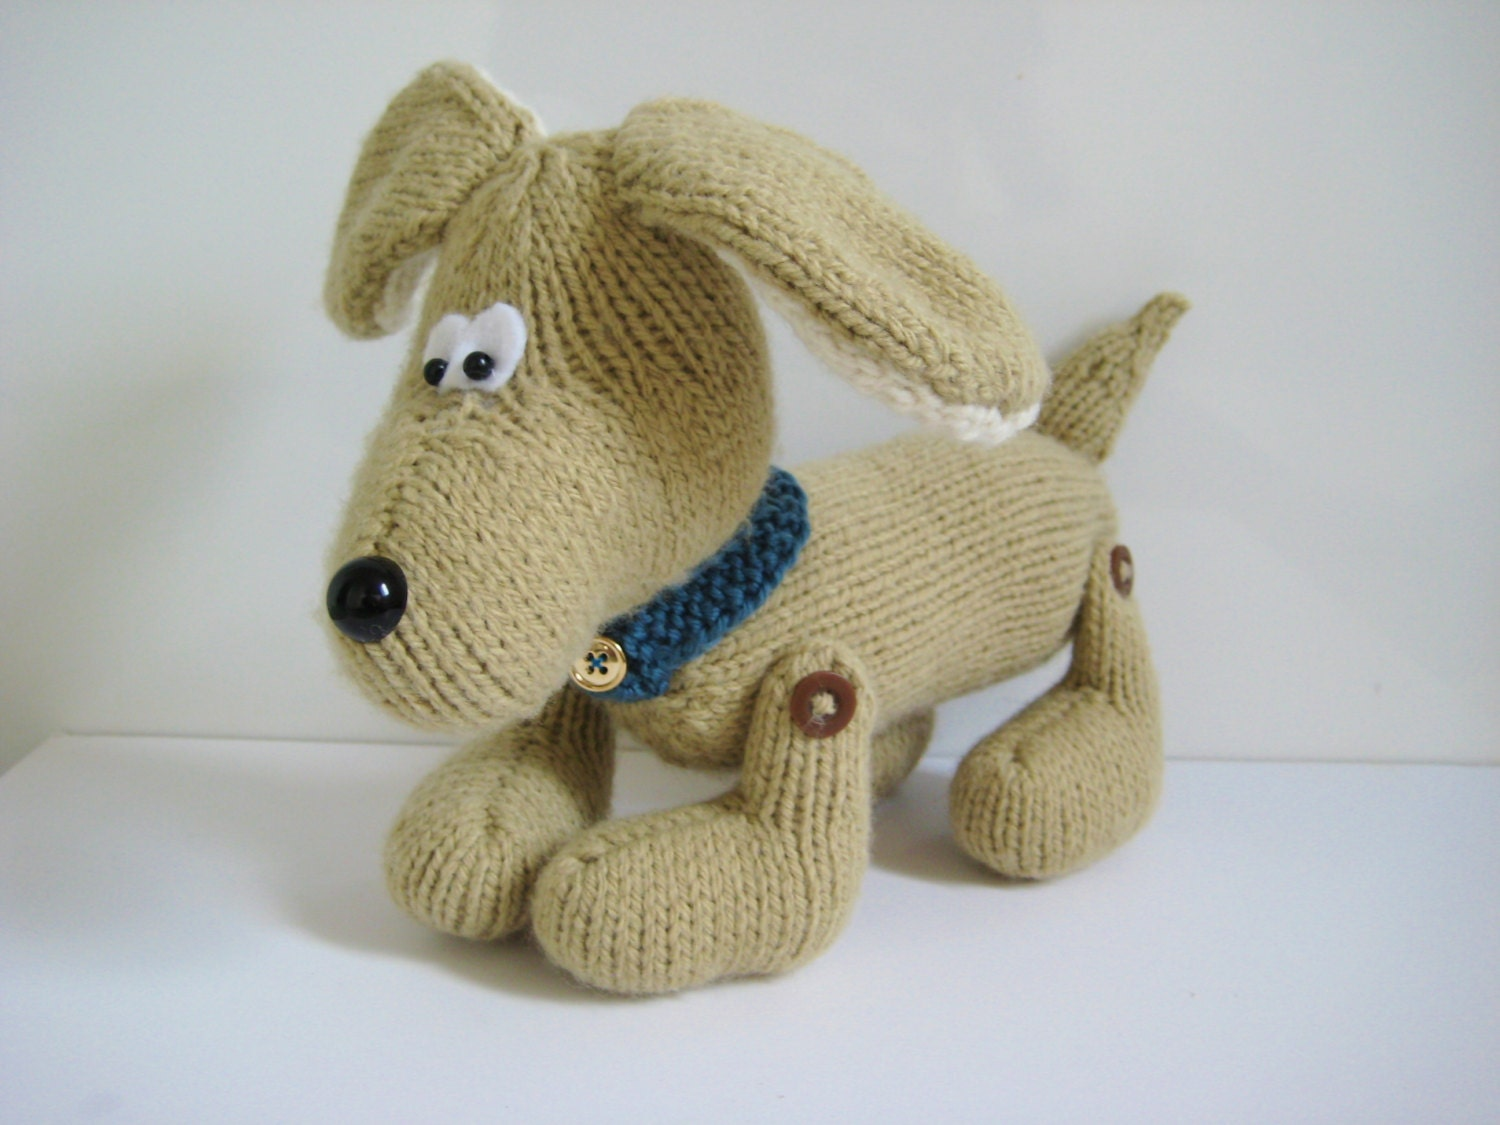 Knitting Patterns For Toy Dogs Free : Biscuit the Friendly Dog toy knitting pattern with by fluffandfuzz